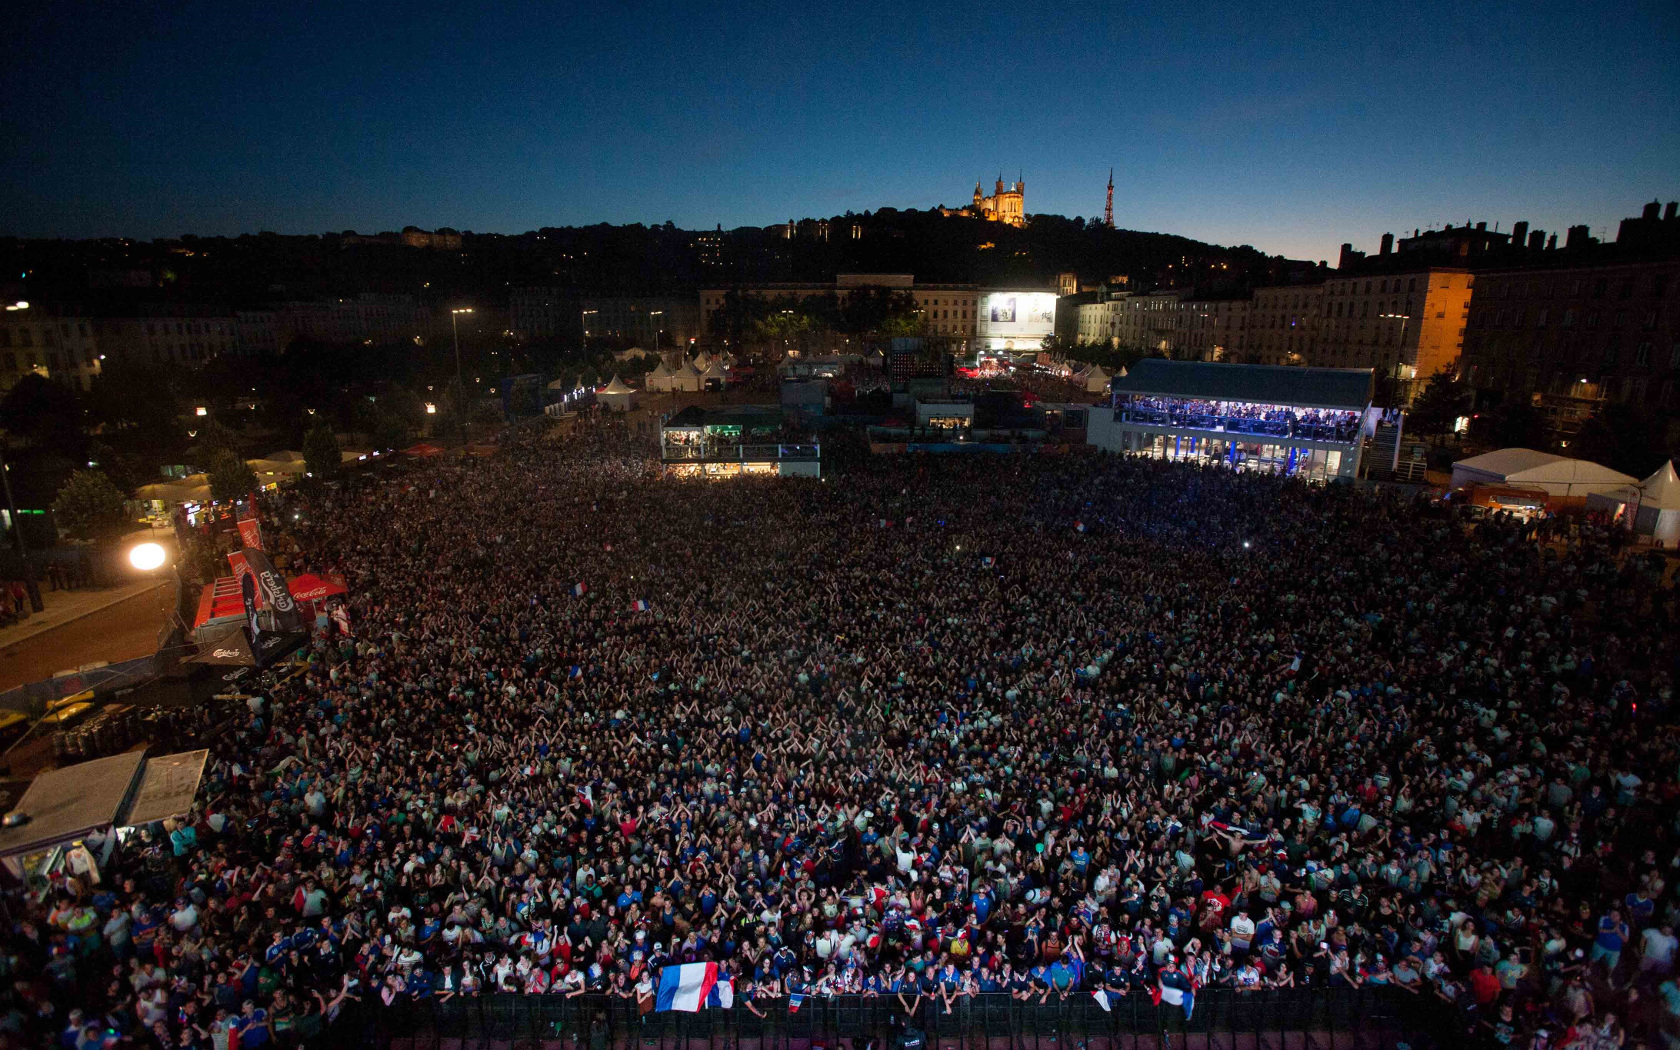 Live! proud to have gathered 407,000 fans at Lyon's fanzone